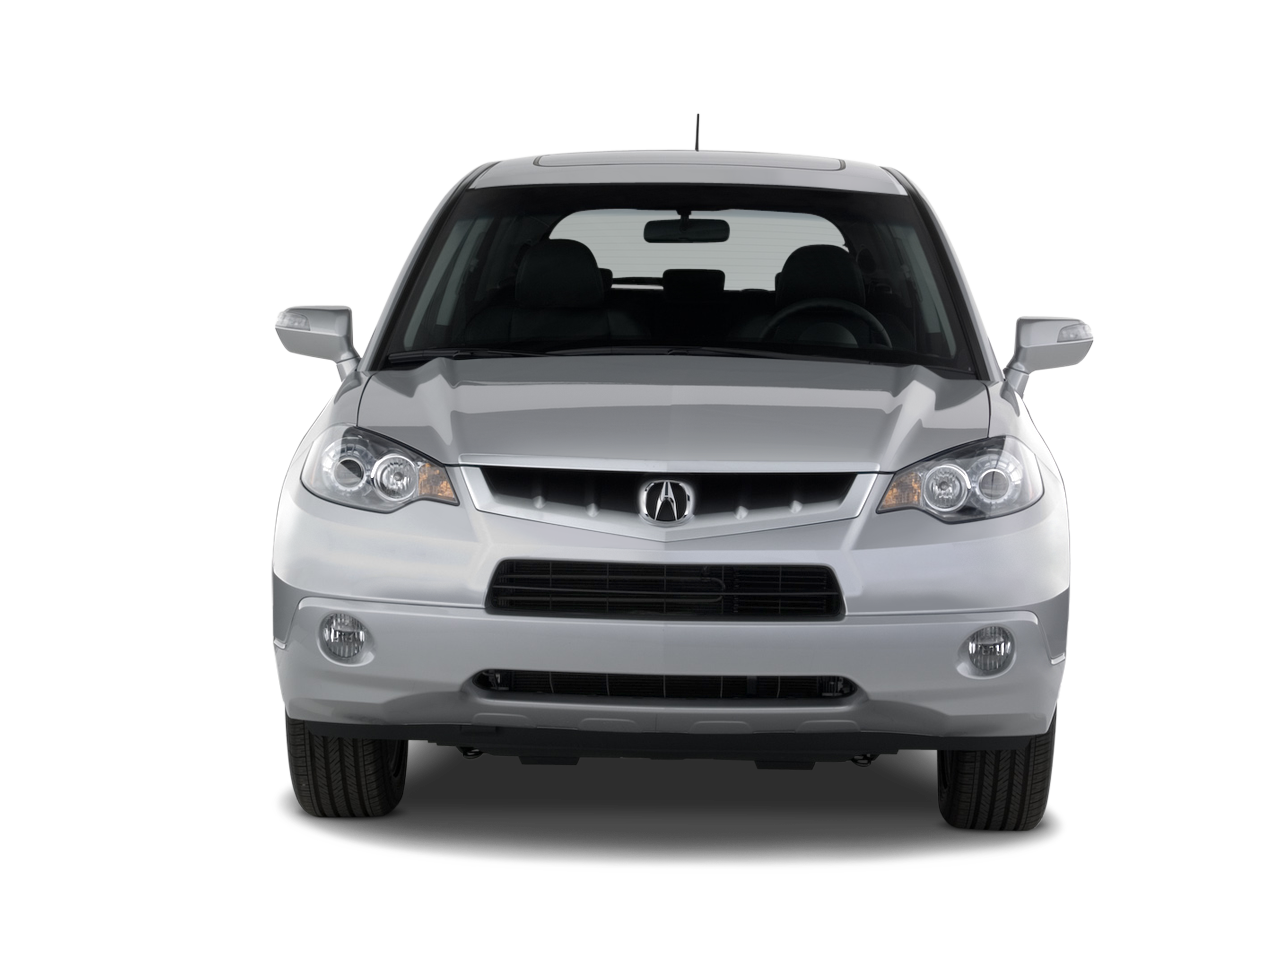 2008 Acura RDX - 2008 & 2009 Future Cars Sneak Preview - Automobile ...